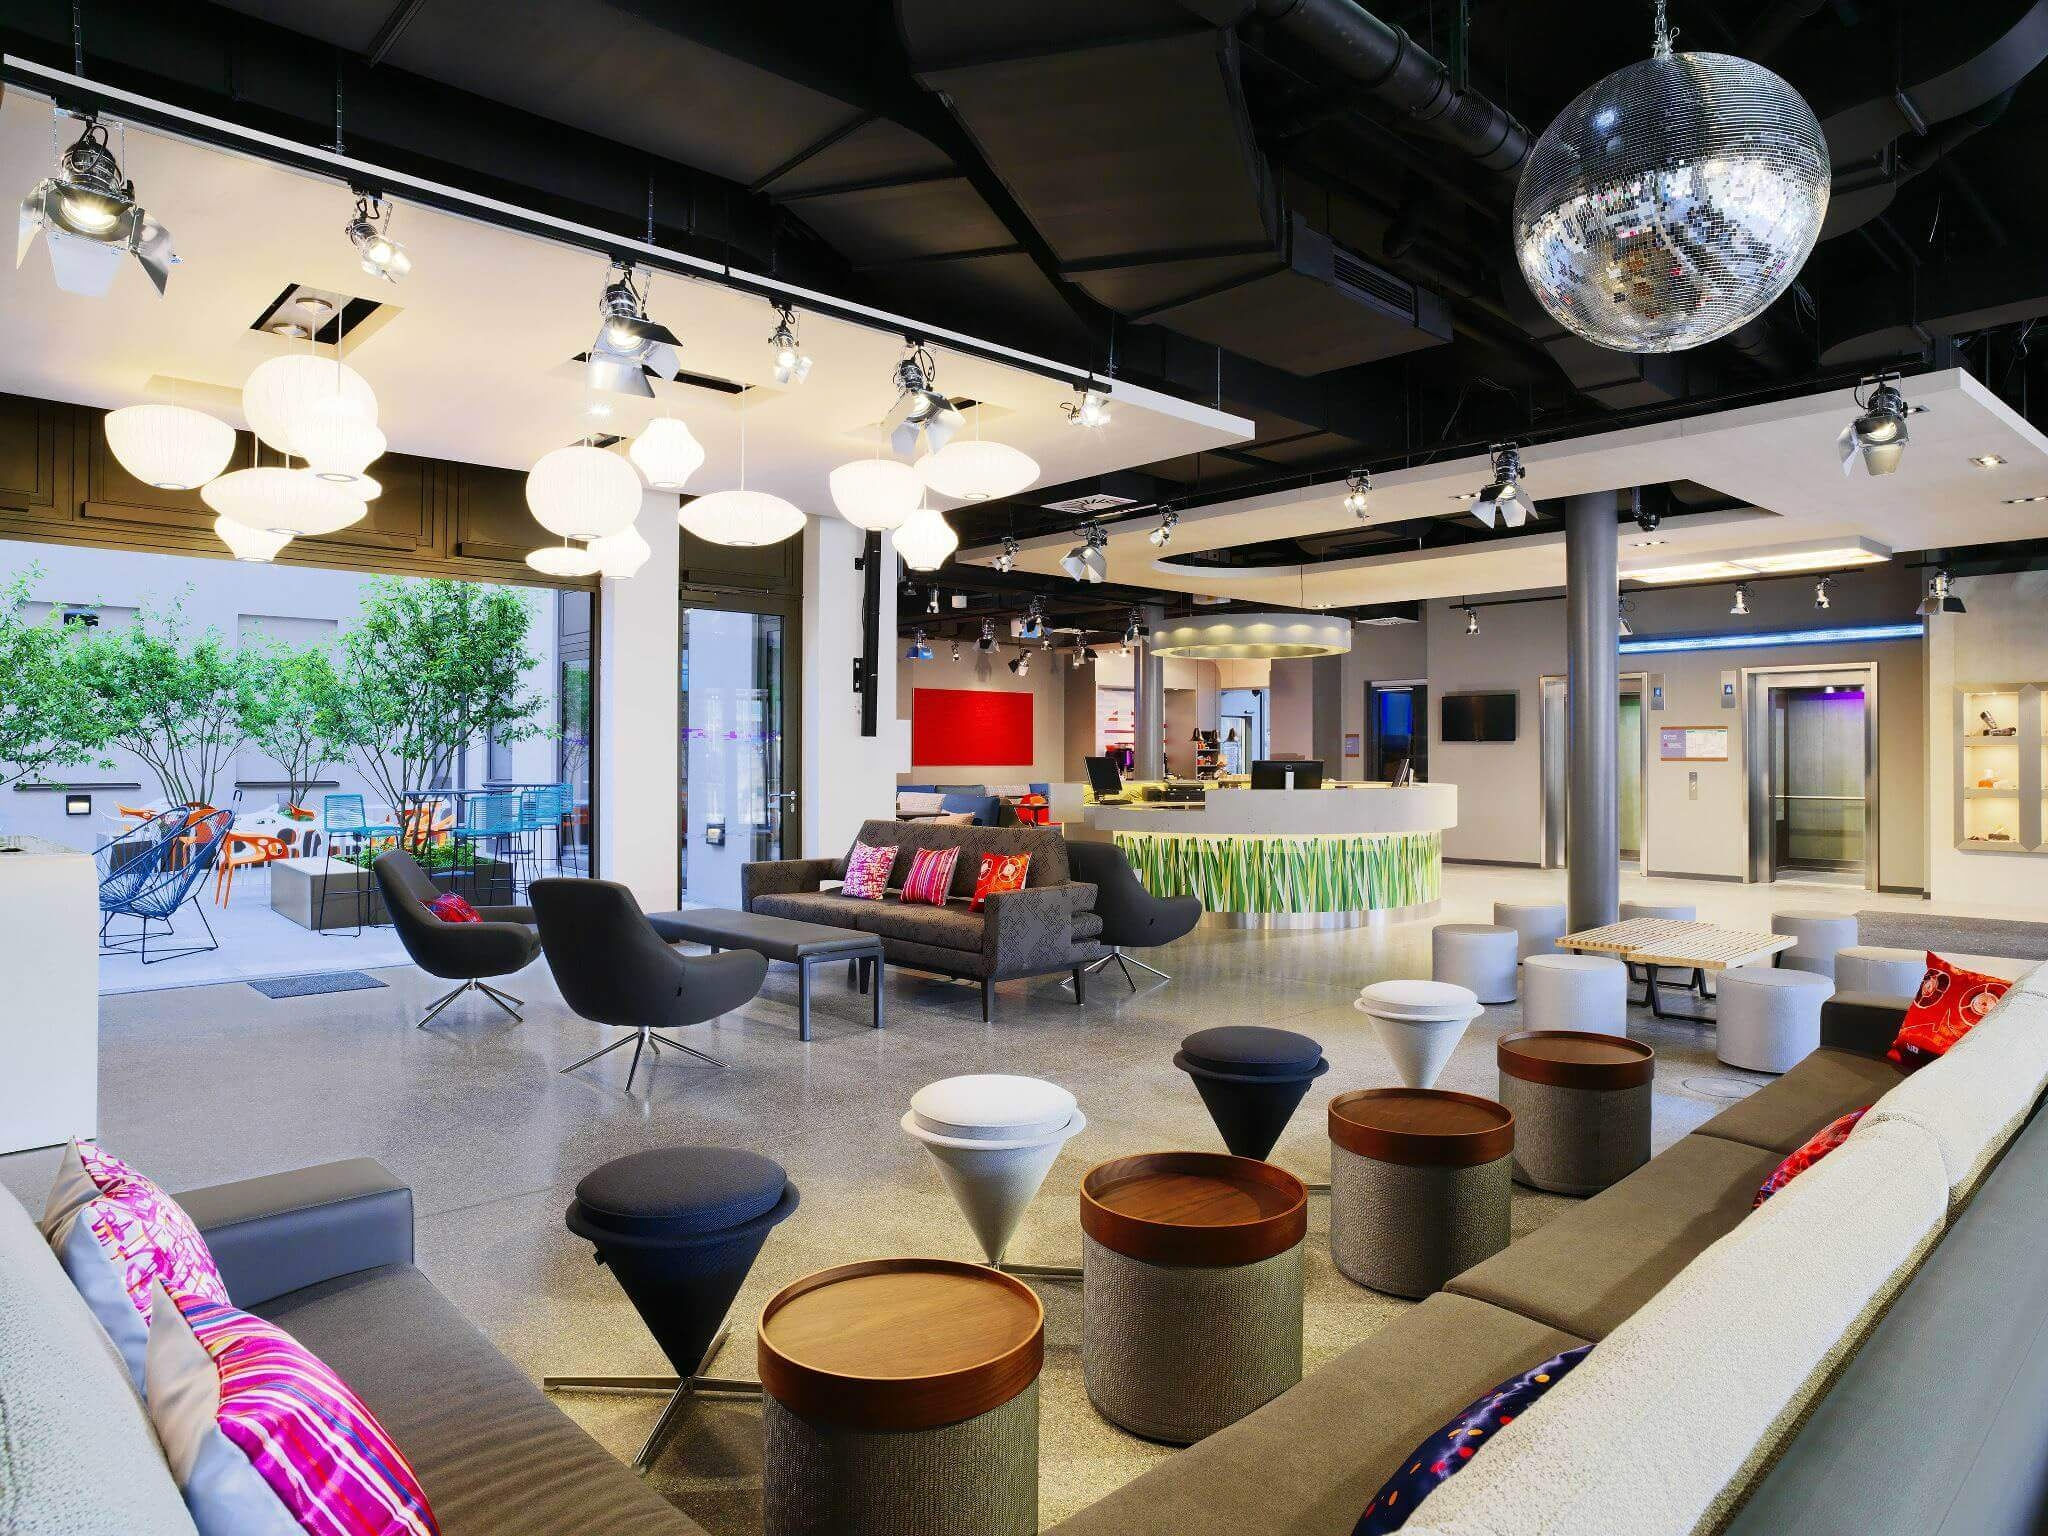 Aloft - Stylish boutique hotel chain by Starwood (i.e.